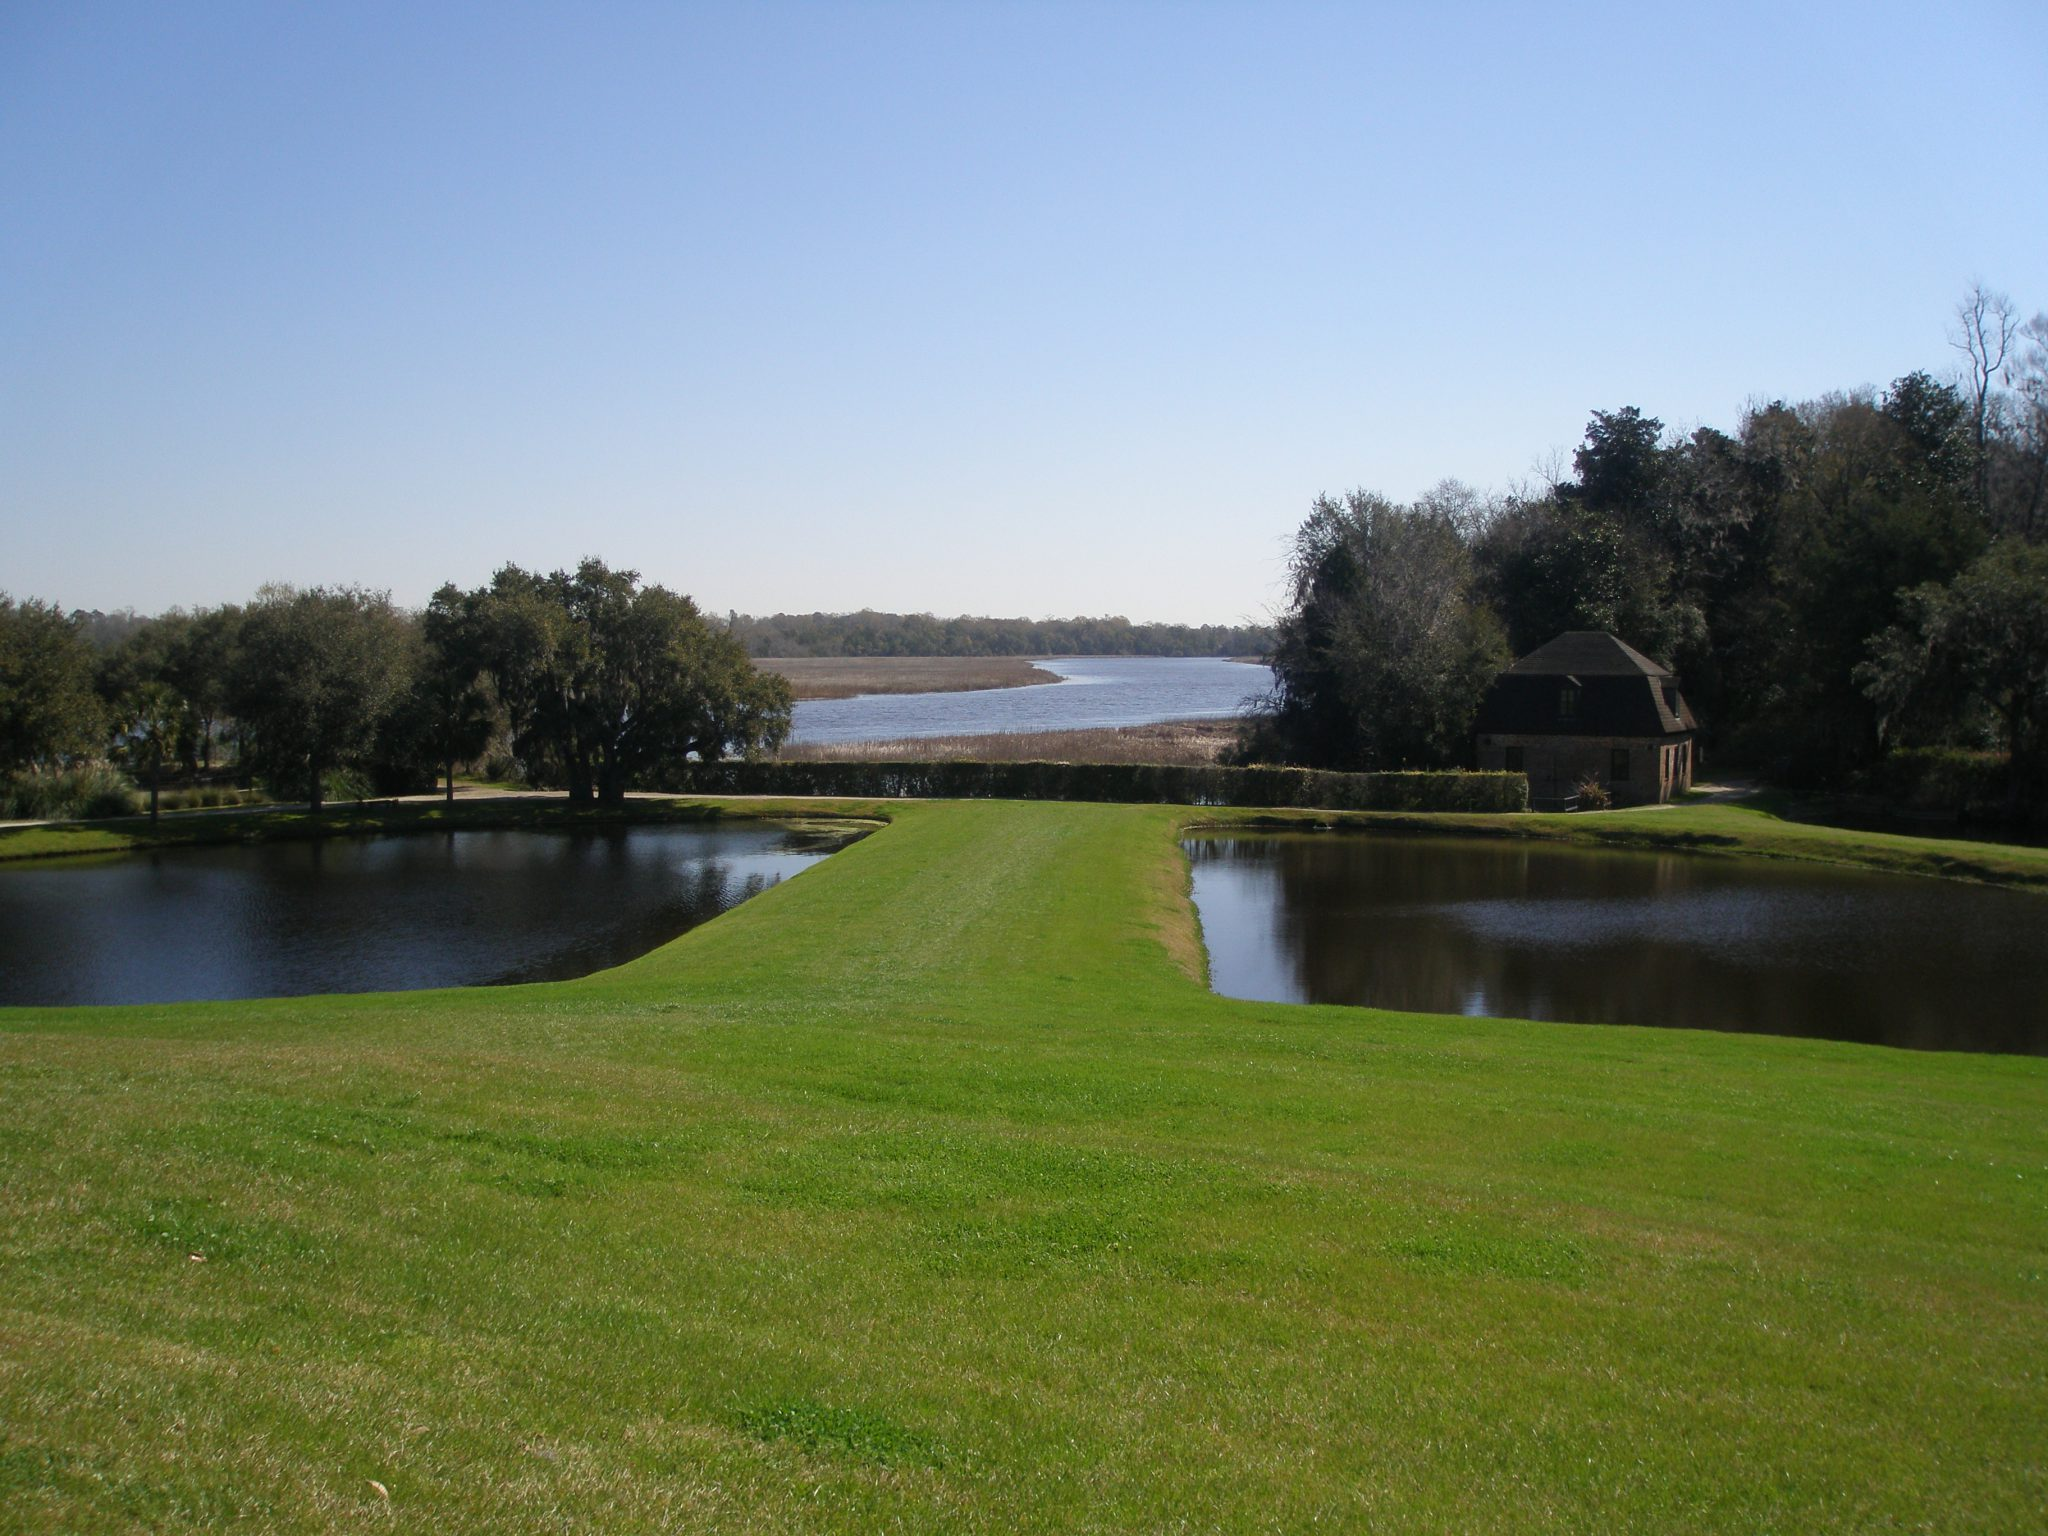 View eastward, away from the site of the Main House, between the Butterfly Lakes, and on to the Ashley River.